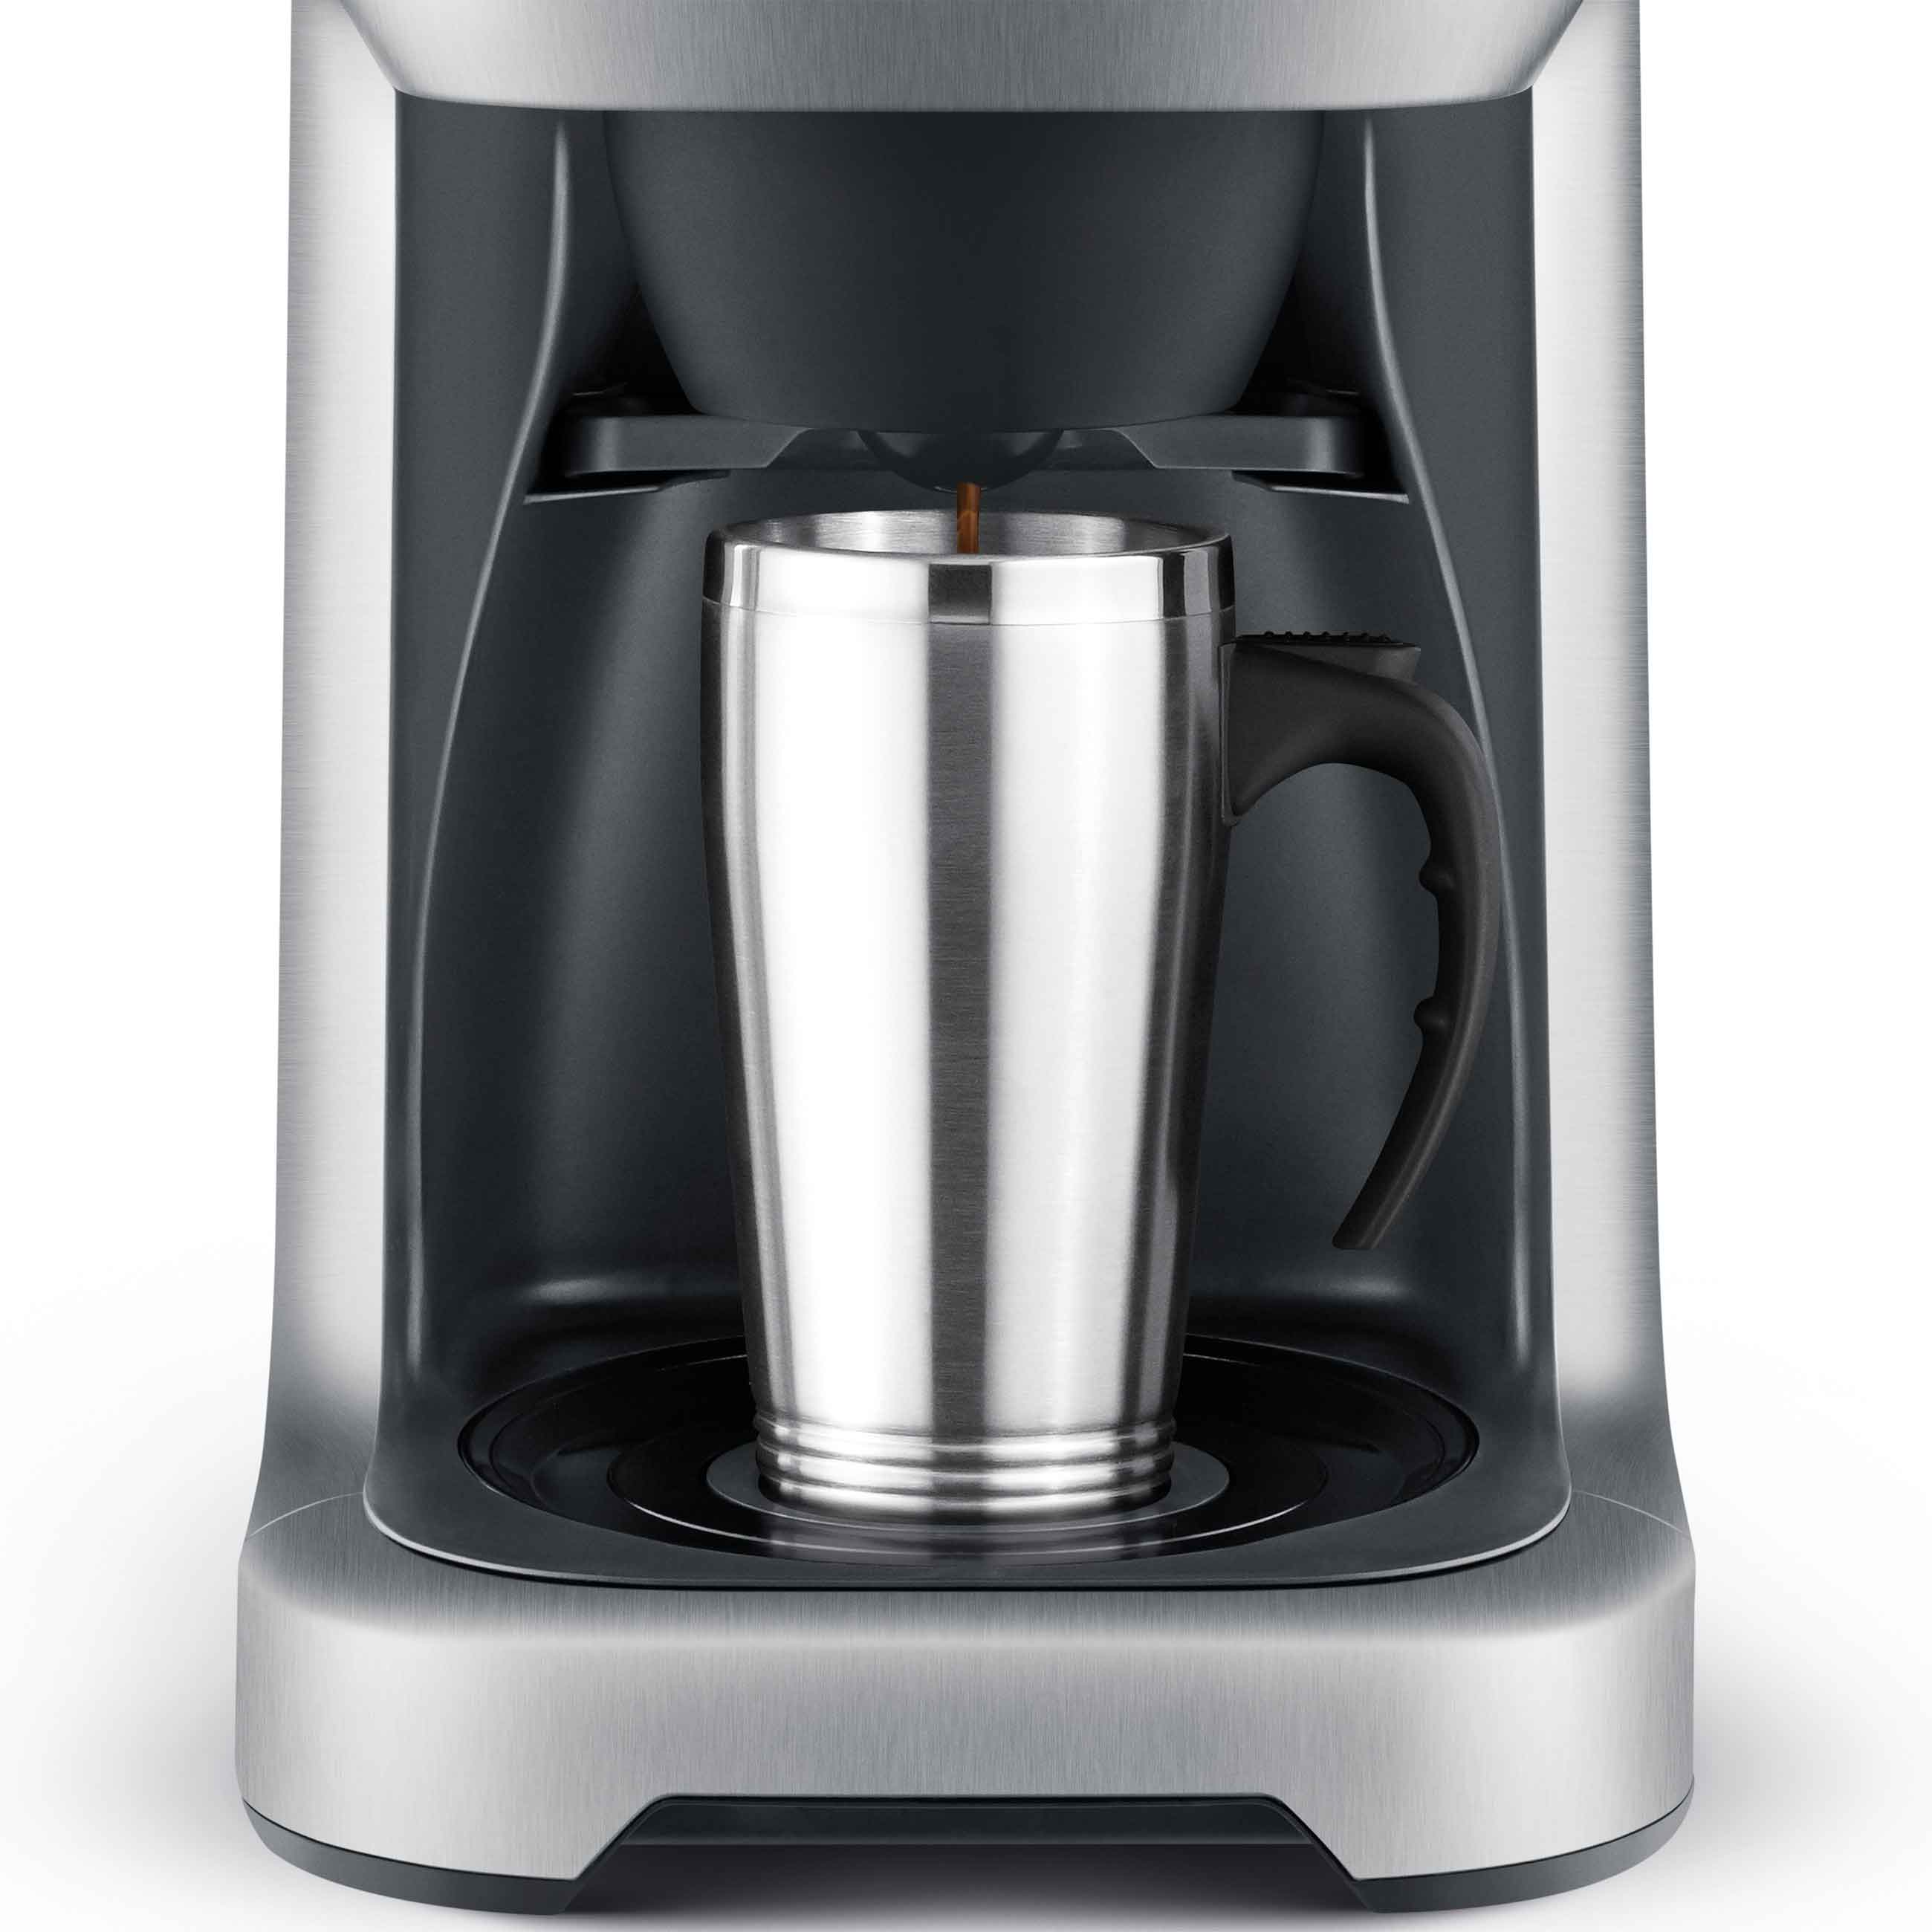 the Grind Control™ Nespresso Machine In Brushed Stainless Steel programmable auto start